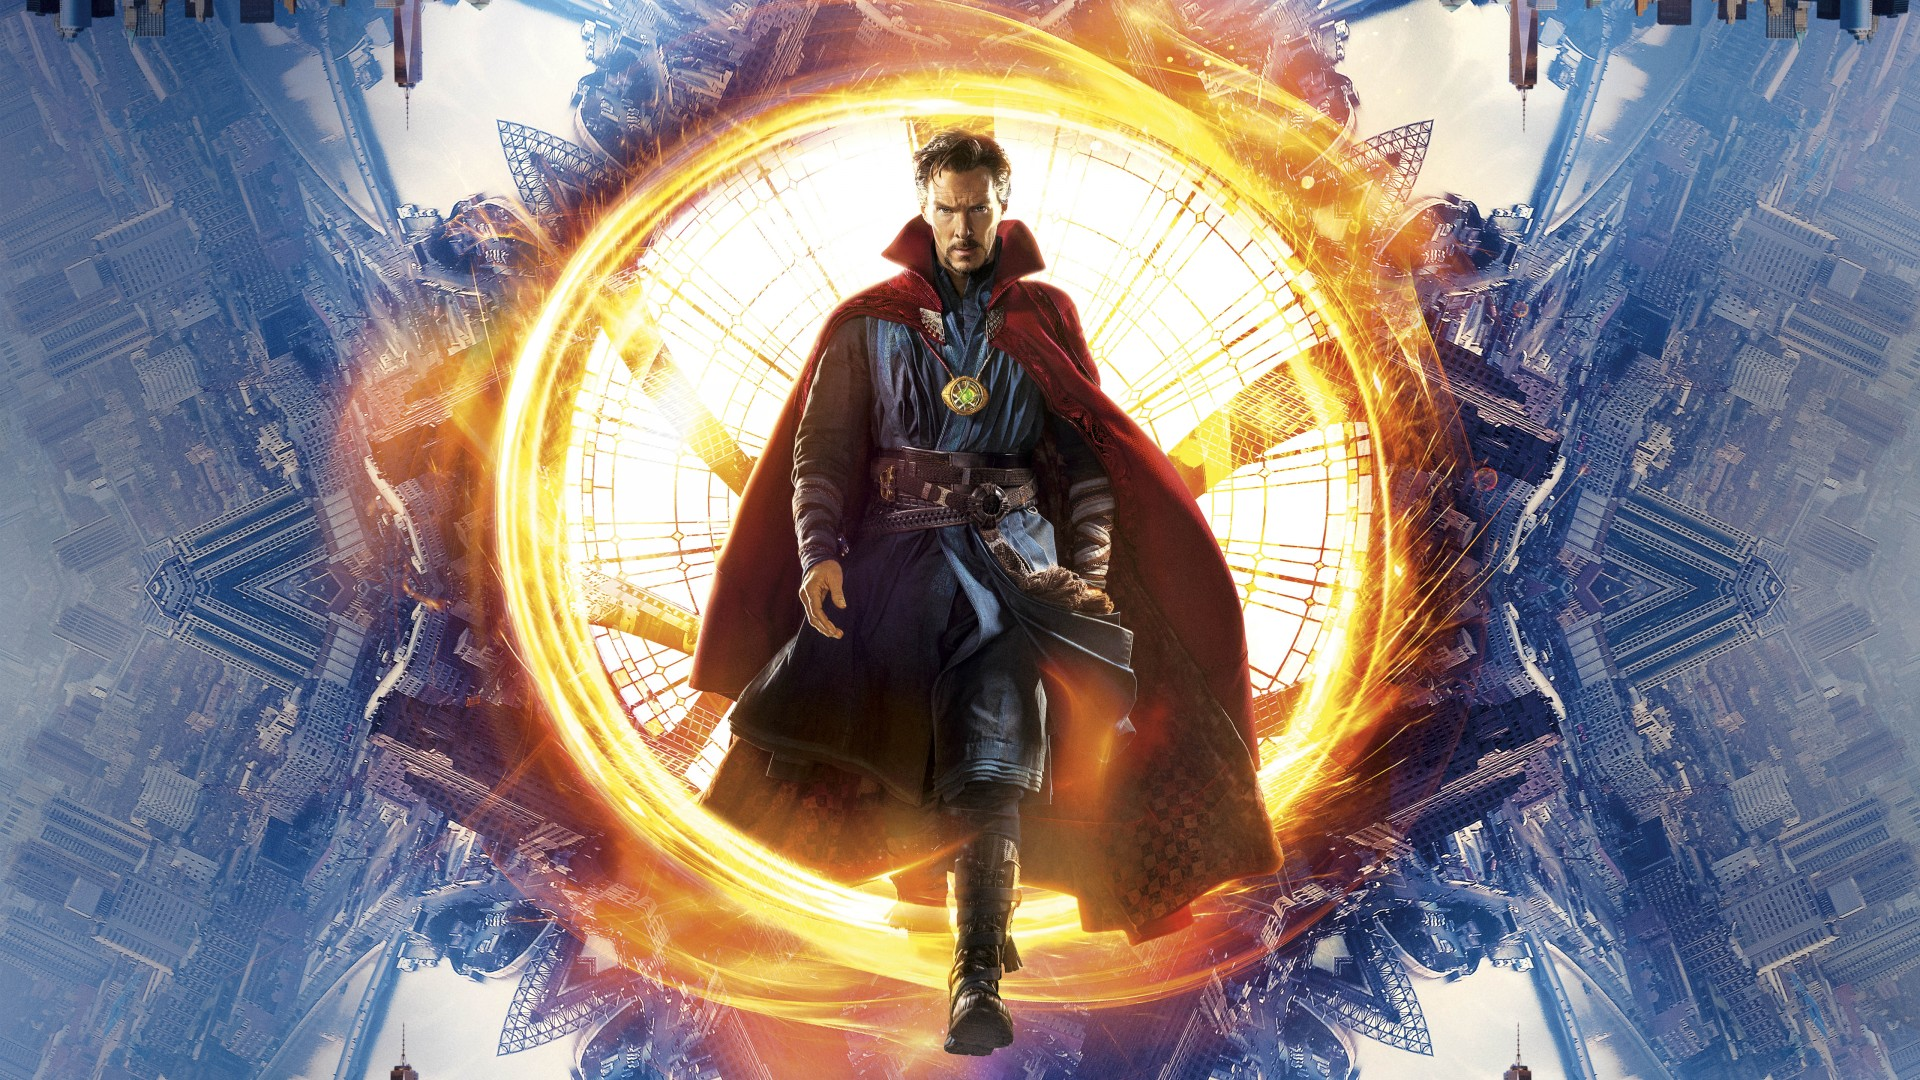 Thor Wallpaper Iphone X Doctor Strange 4k 5k Wallpapers Hd Wallpapers Id 18506